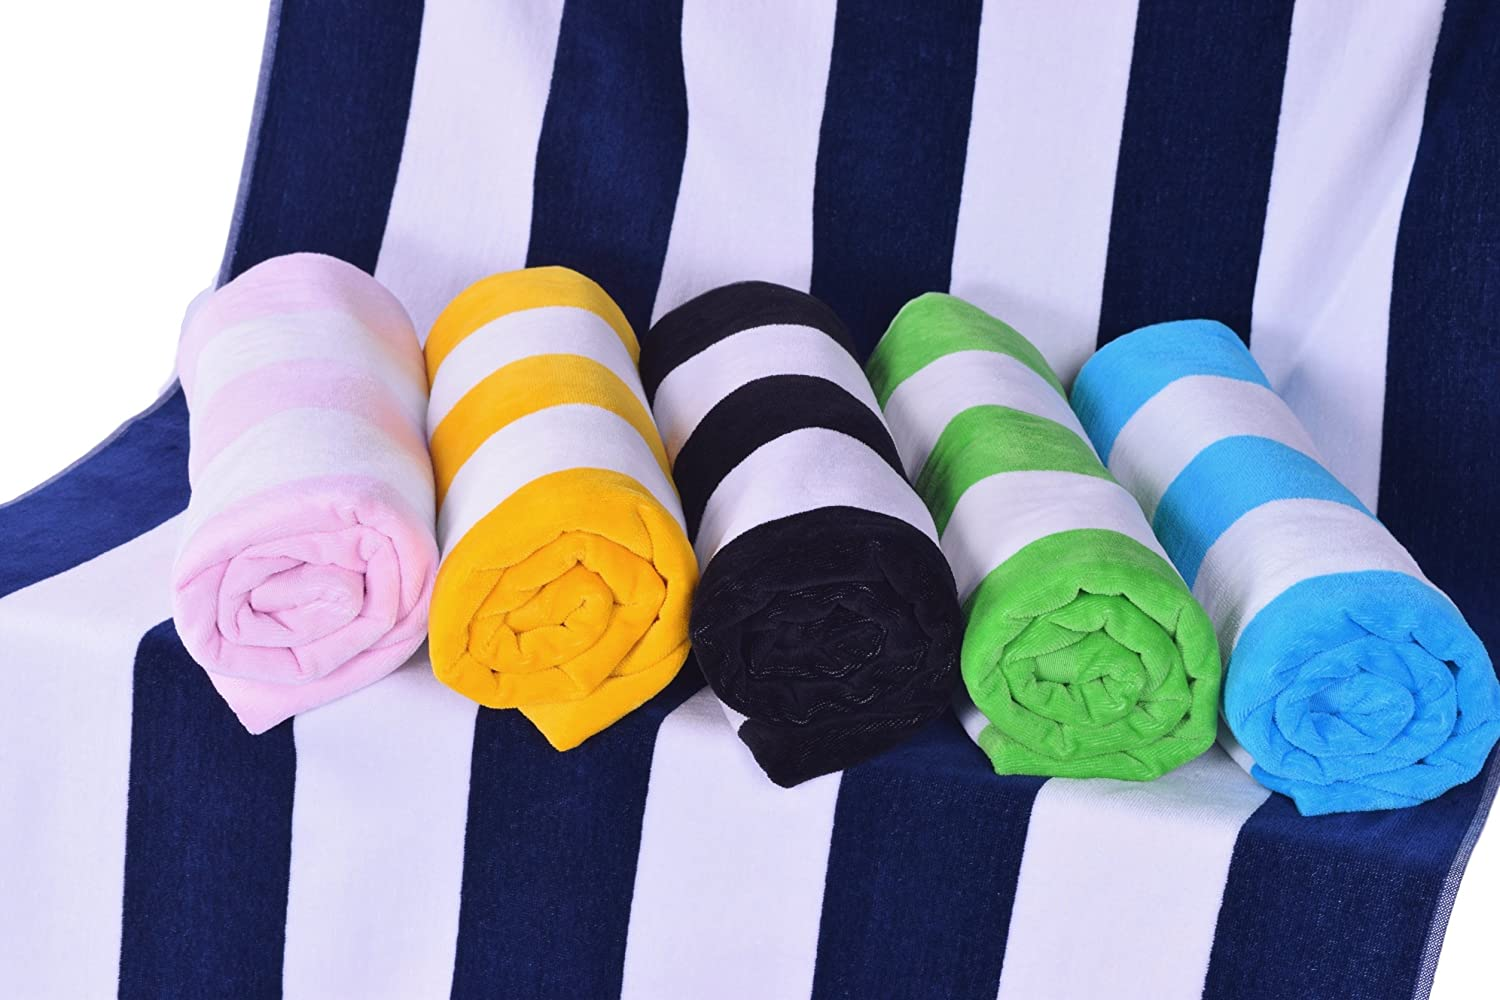 Puffy Cotton Beach Towel Set of 1 XL Extra Large Cabana Stripe Beach Towels 100/% Turkish Cotton Oversized Soft and Absorbent Pool Velour Top Round Circle Loop Terry Cloth Lime Green